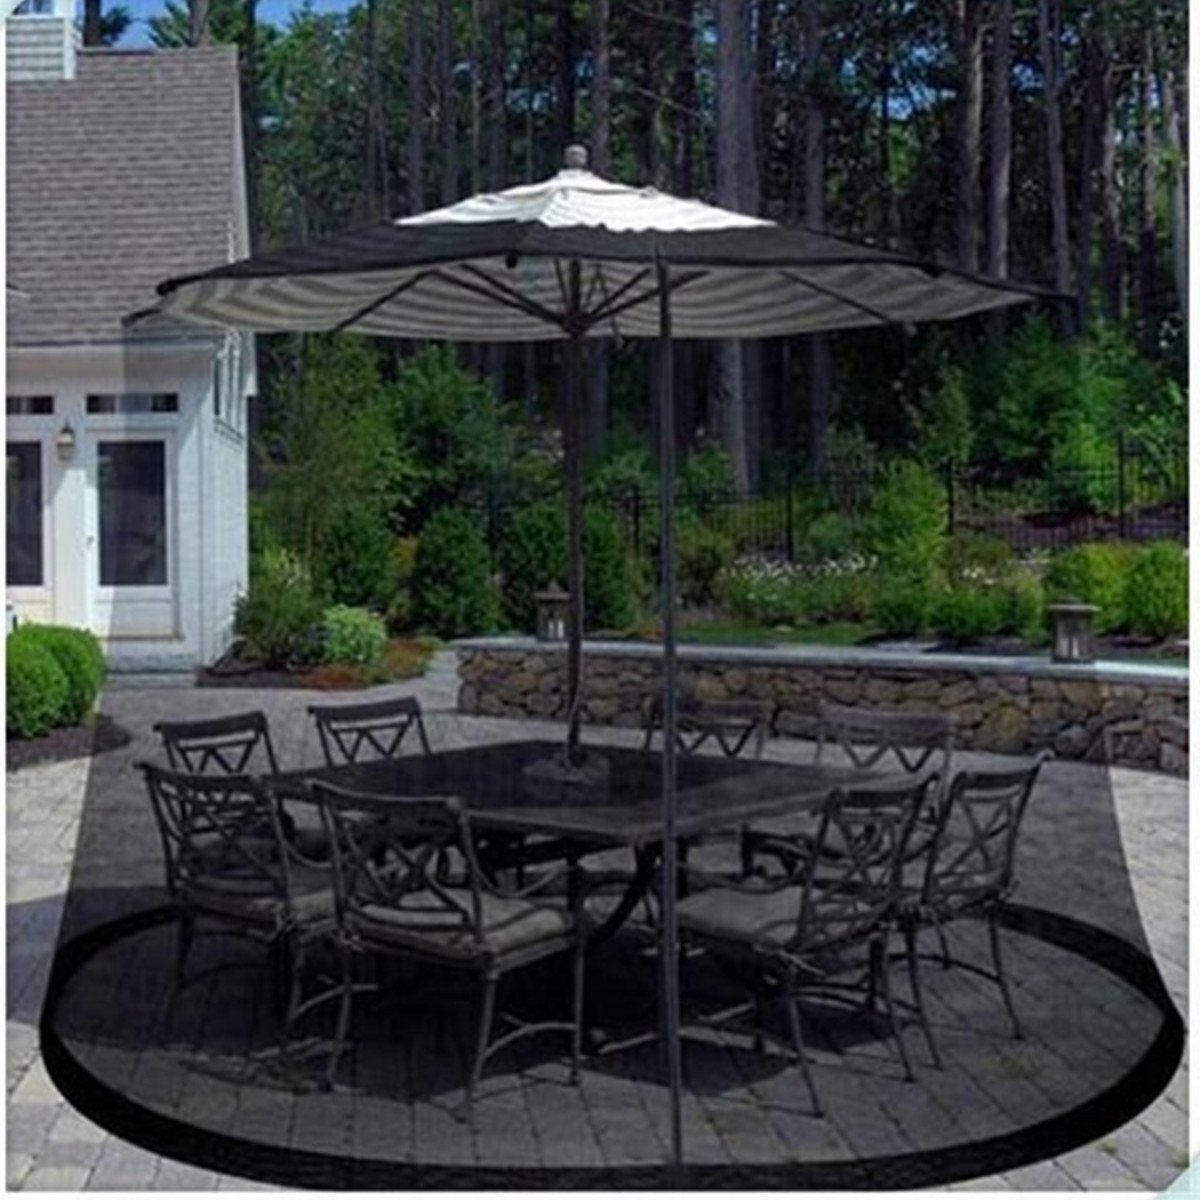 New Yard Umbrella Screen Cover Mosquito Bug Insect Net